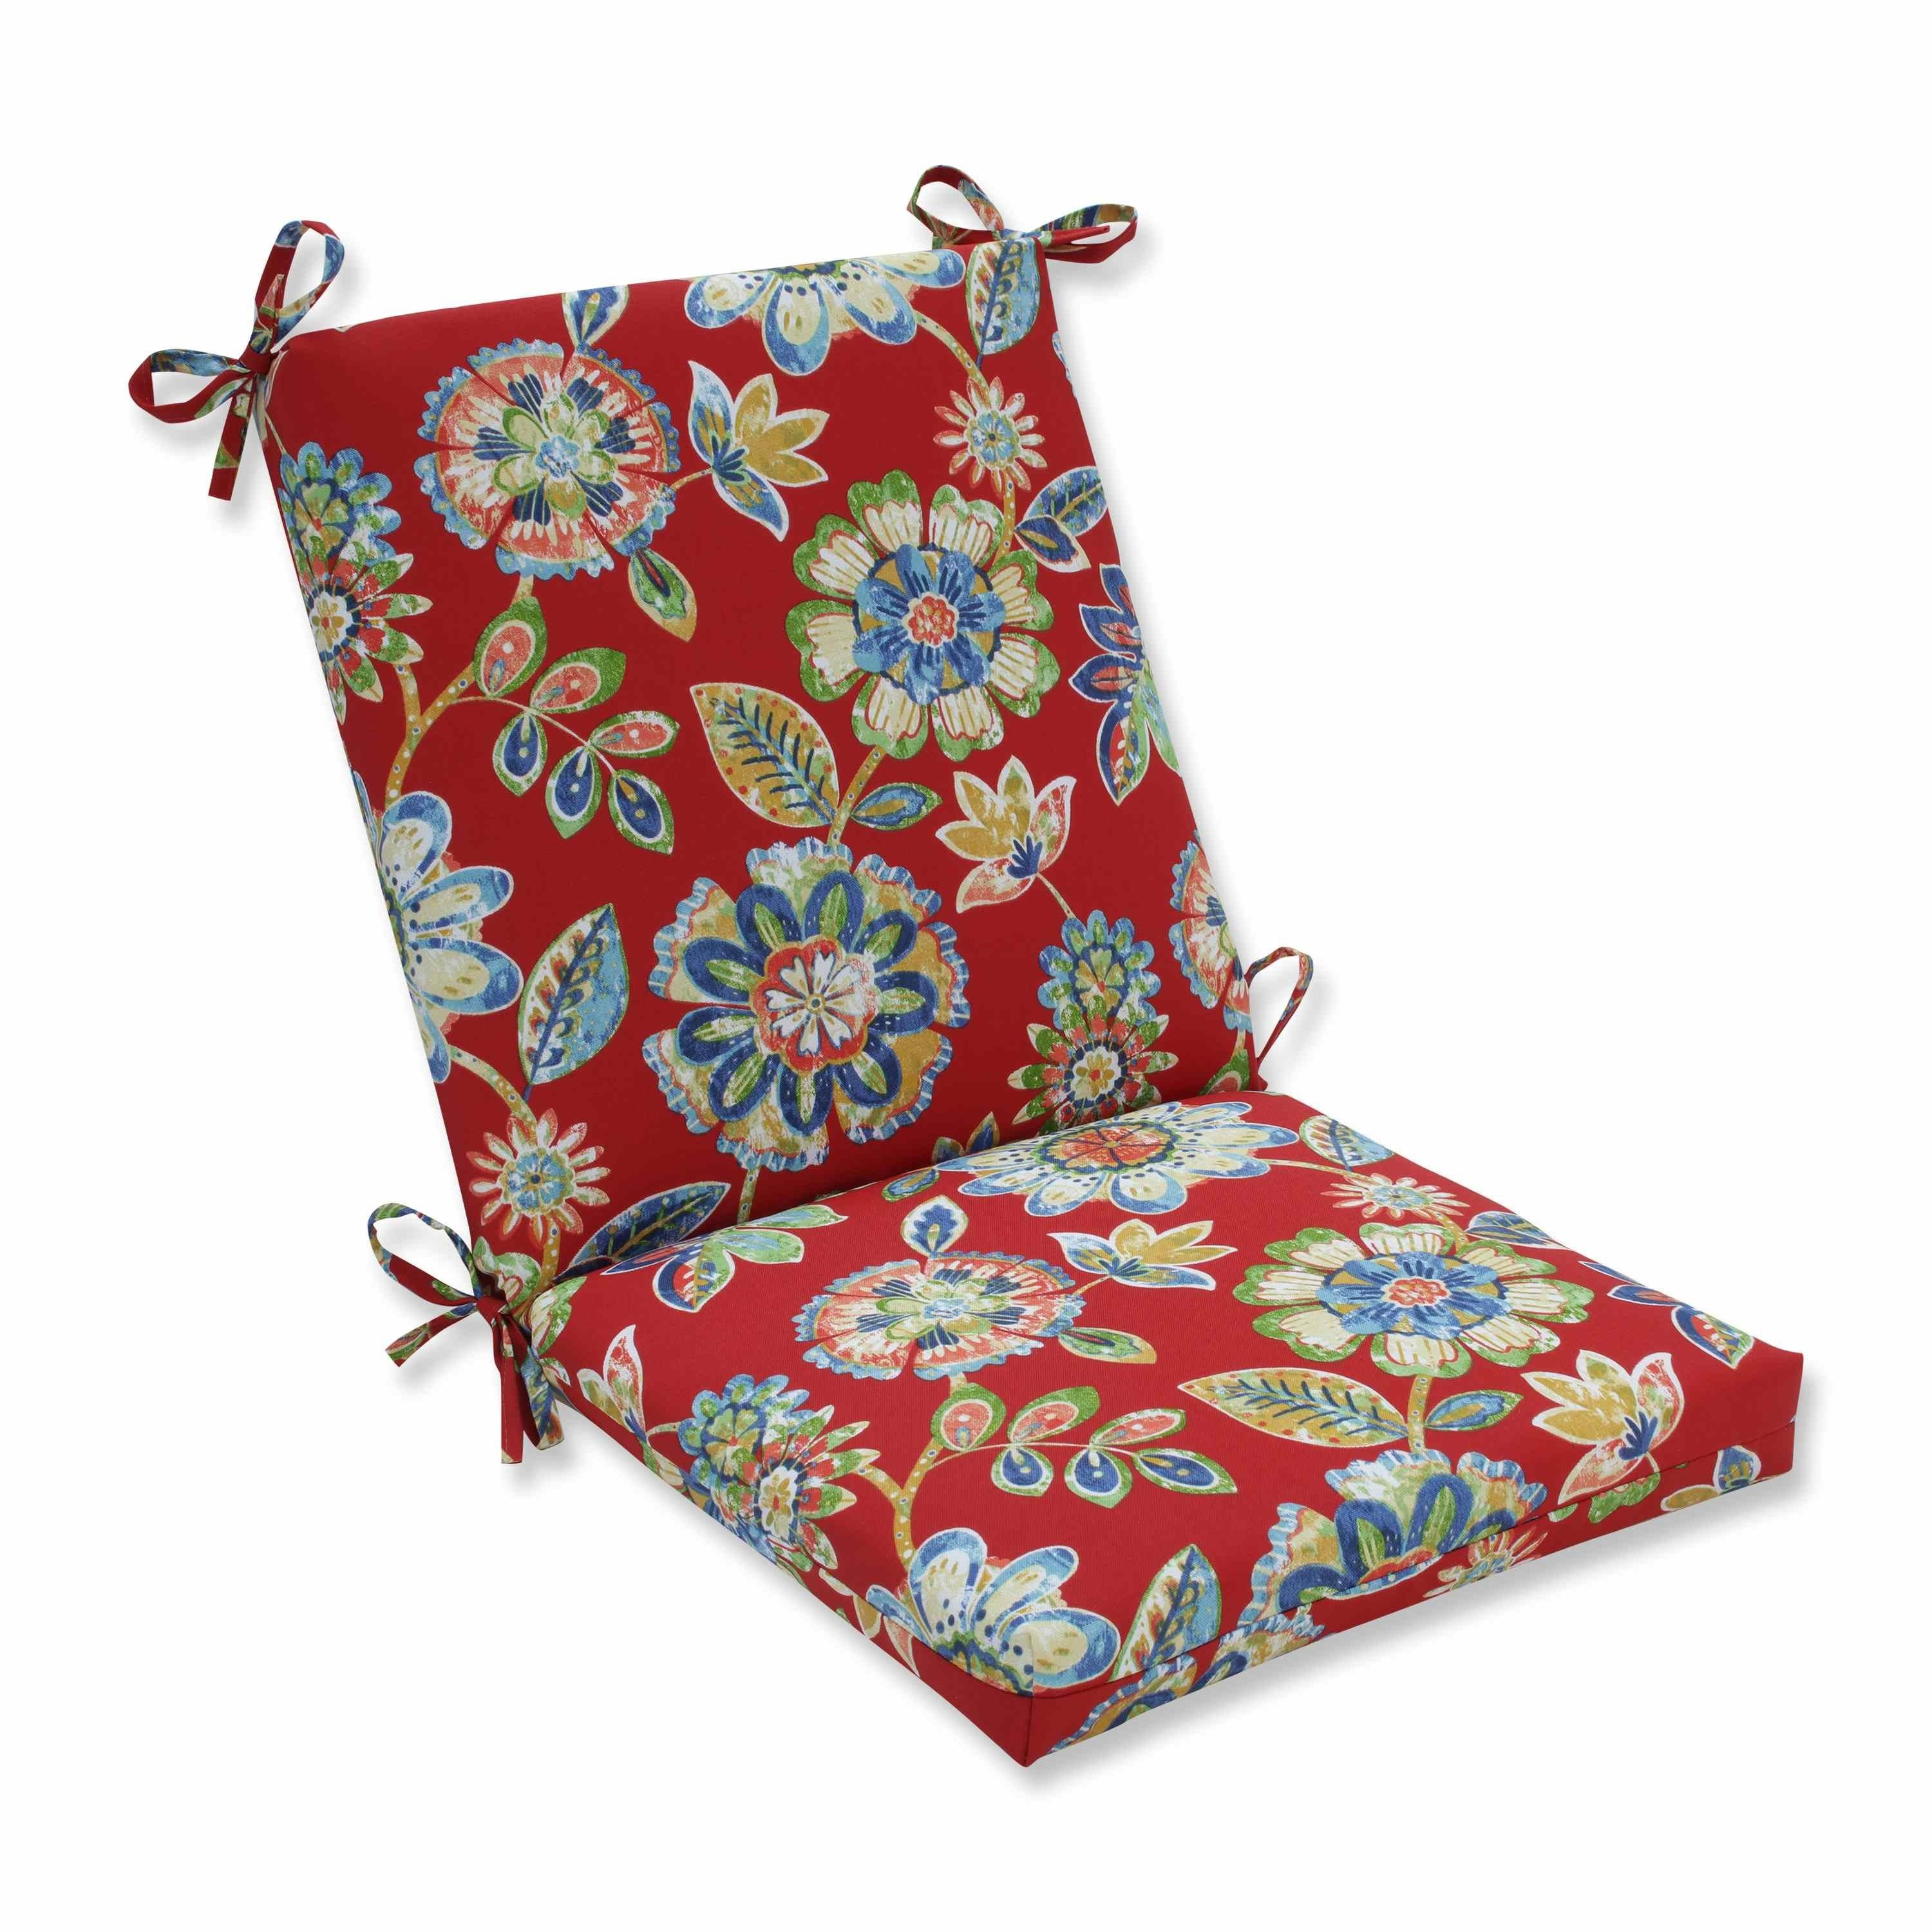 Daelyn cherry squared corners chair cushion outdoor cushions